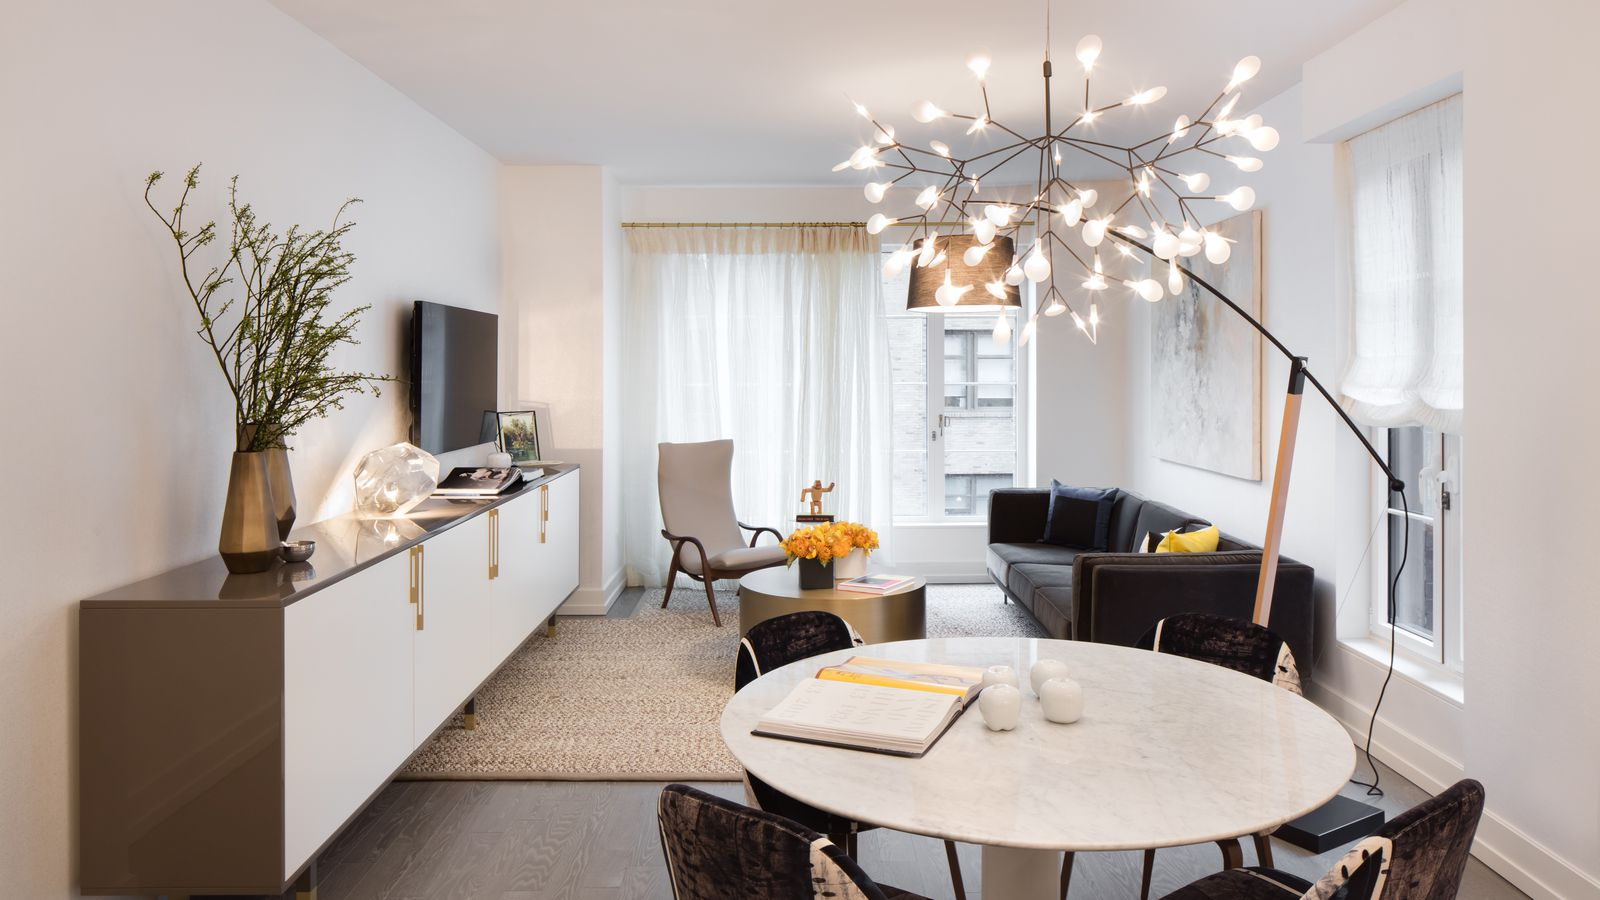 Extells cushy Hudson Square condo shows off its model